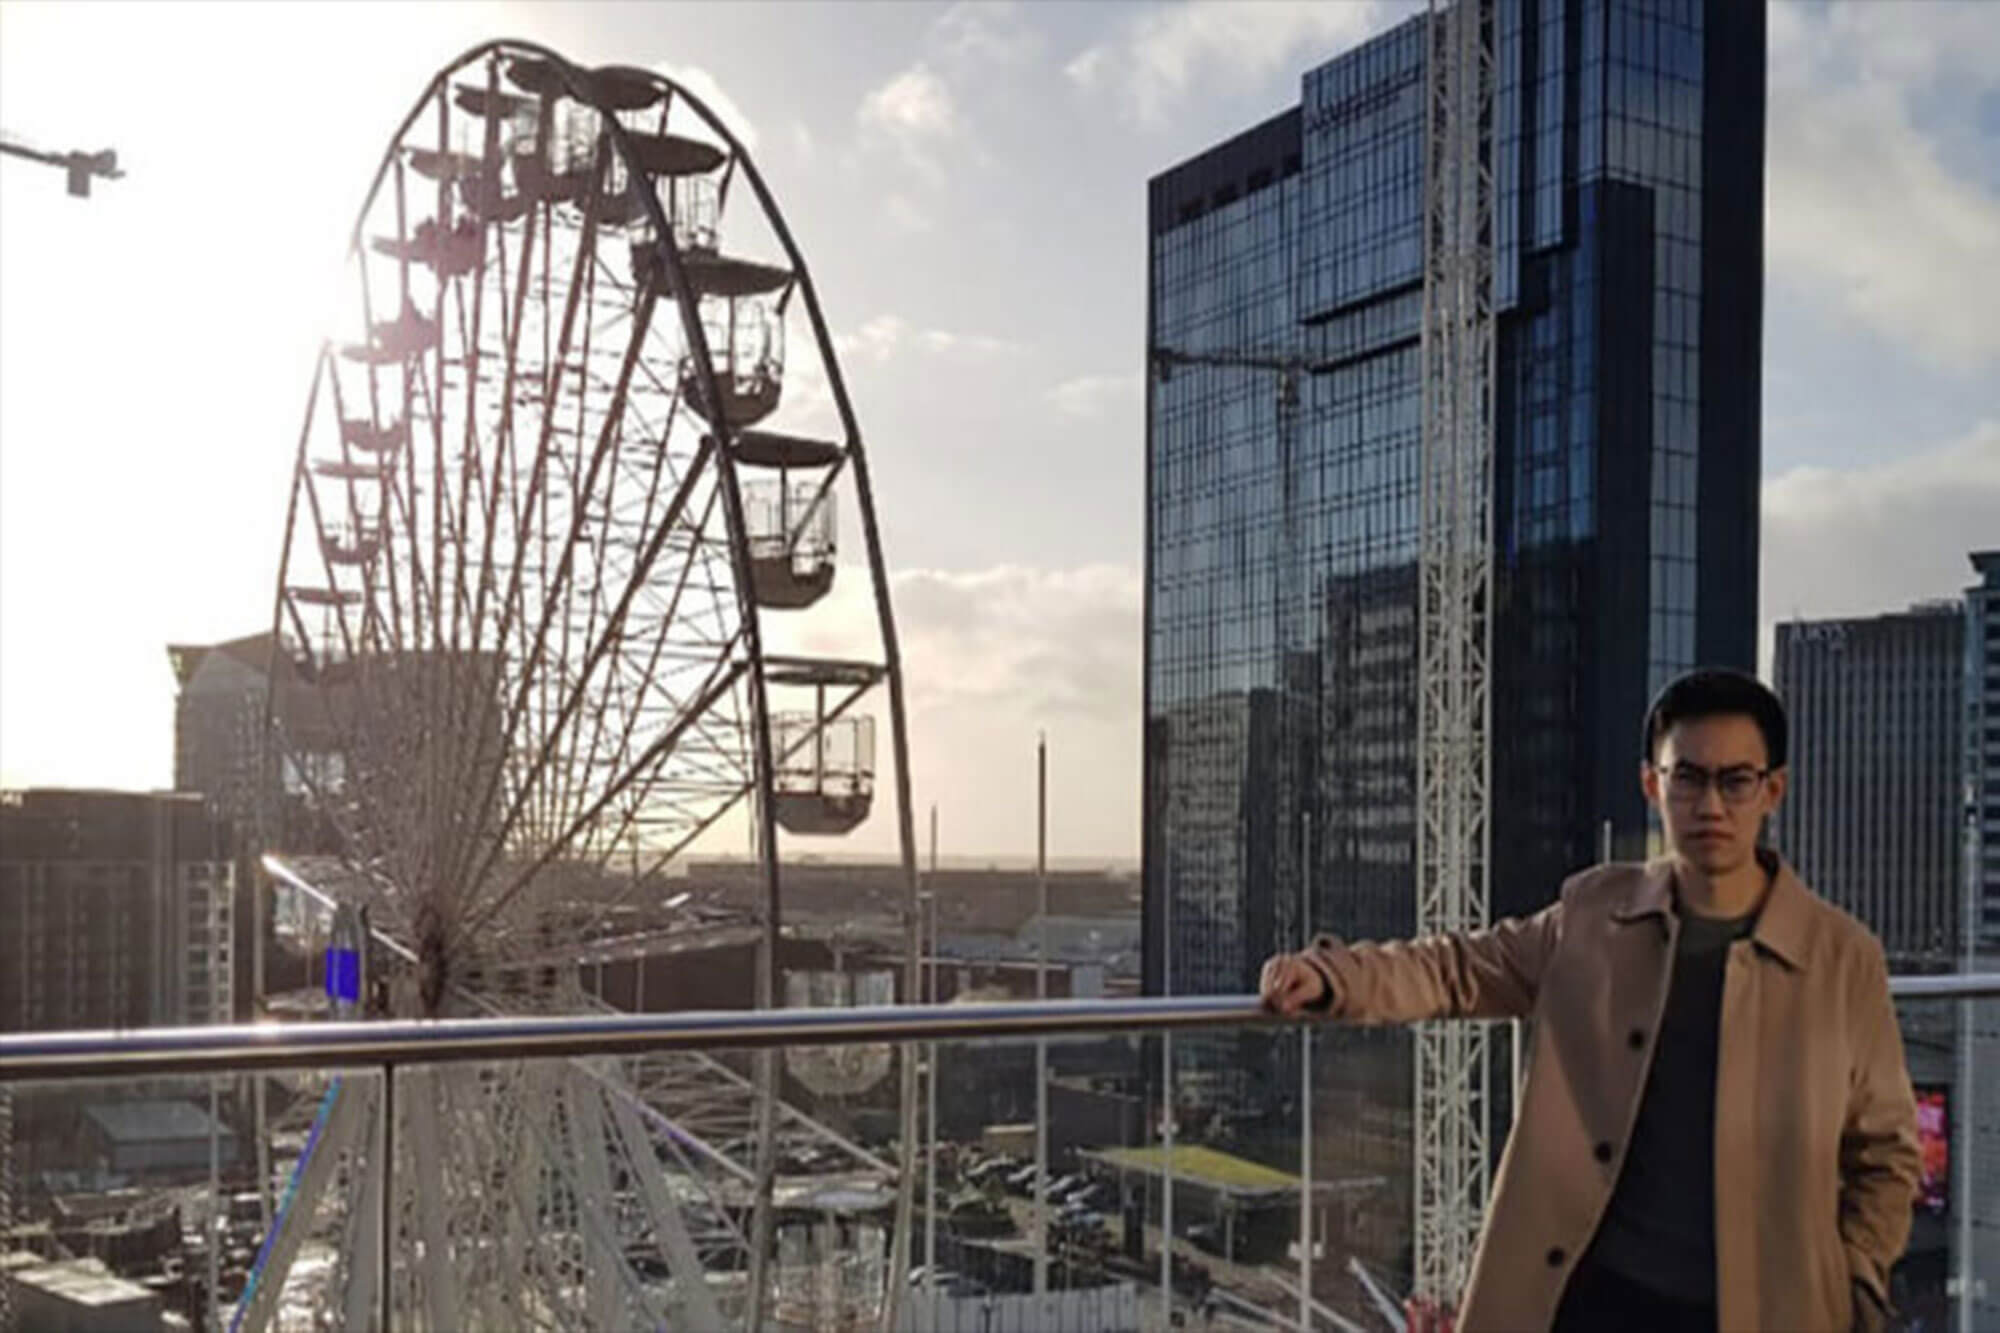 International student in a city centre with Ferris wheel in the background